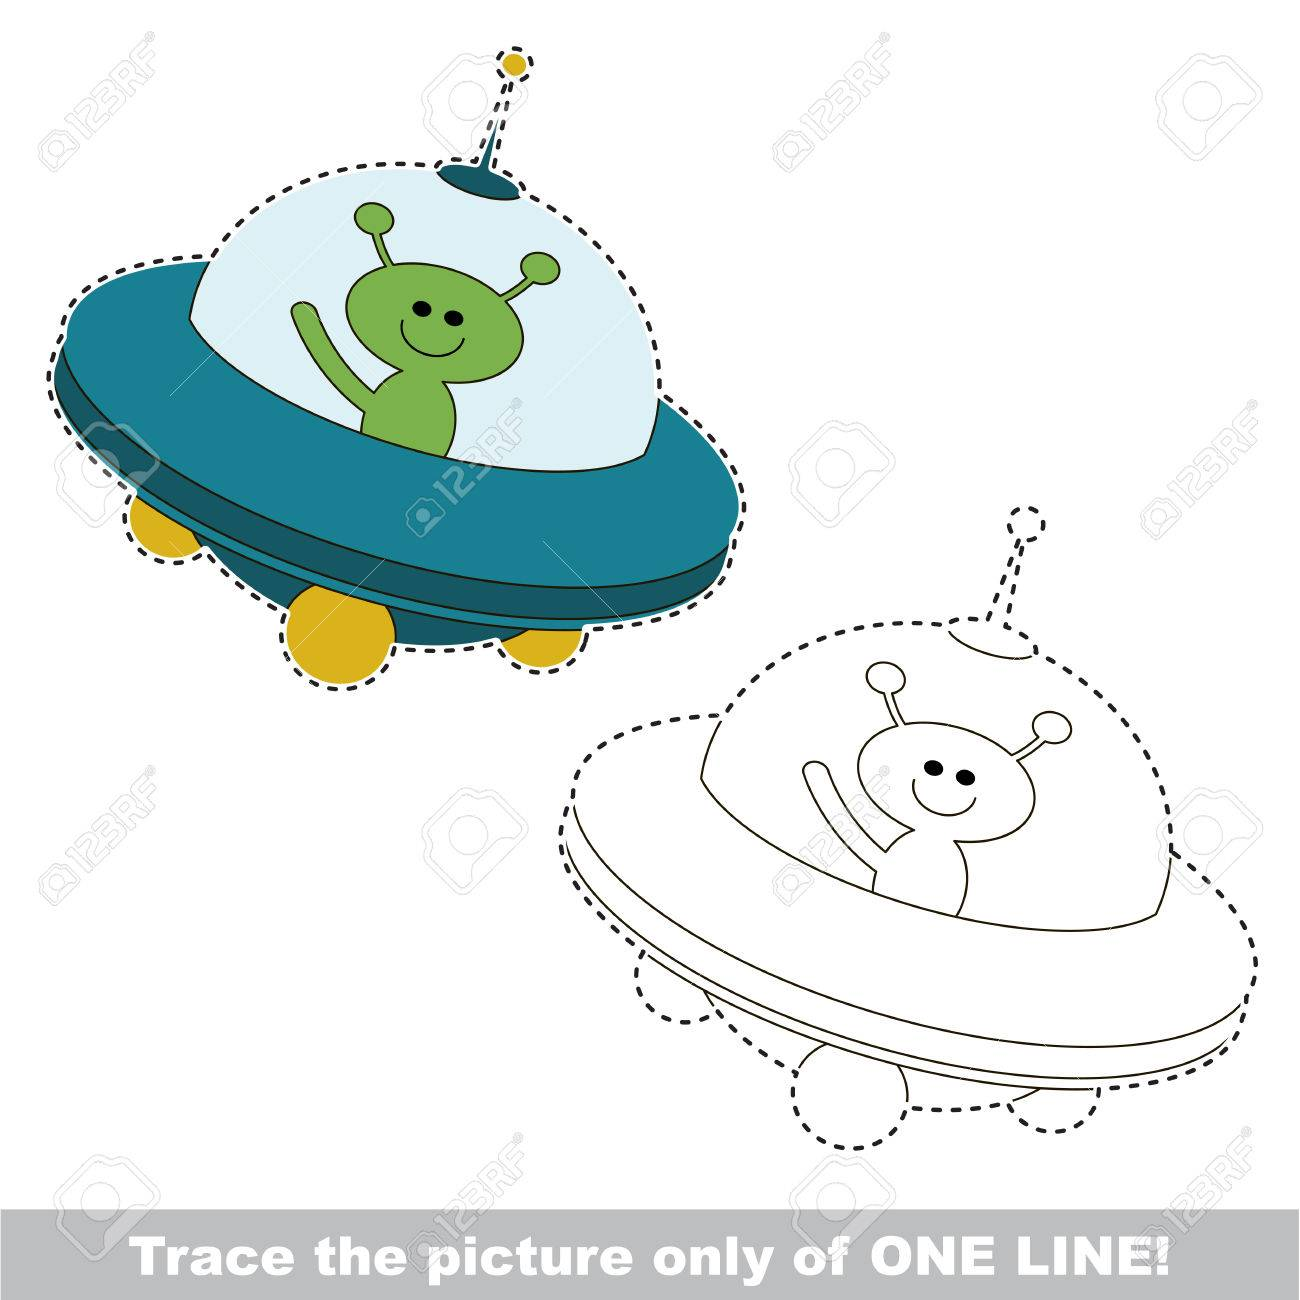 Ufo To Be Traced Only Of One Line The Tracing Educational Game